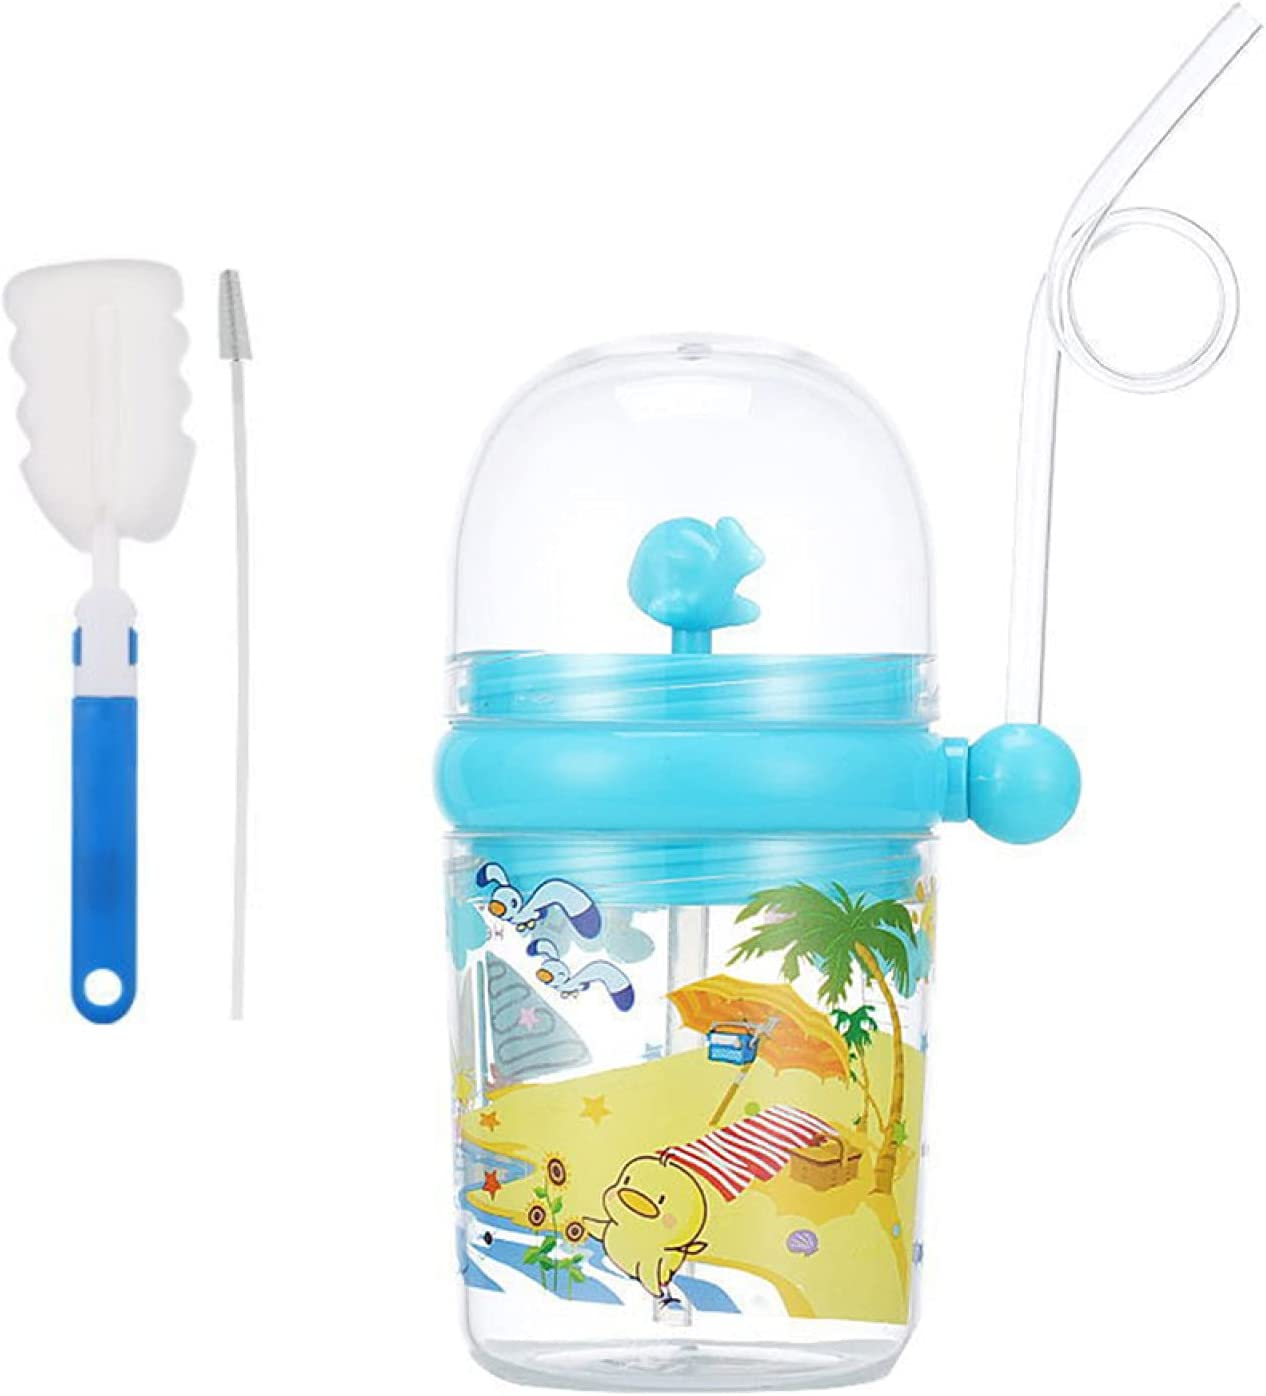 yanbirdfx 250ml Cartoon Whale Spray Kids Fixed price for sale Cup Feeding Purchase Drink Water